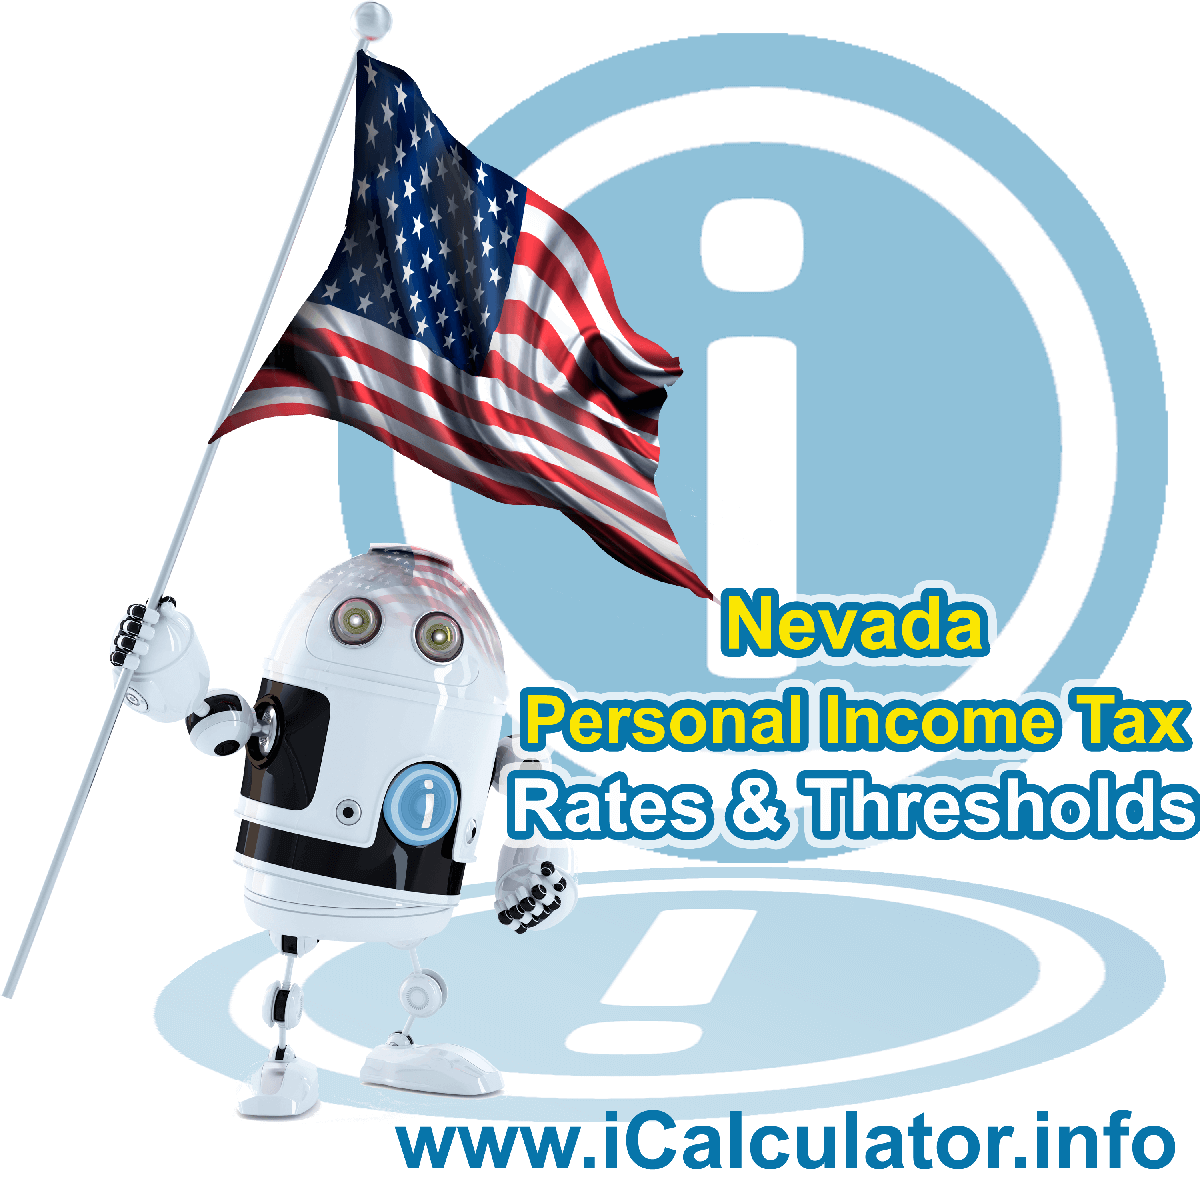 Nevada State Tax Tables 2016. This image displays details of the Nevada State Tax Tables for the 2016 tax return year which is provided in support of the 2016 US Tax Calculator